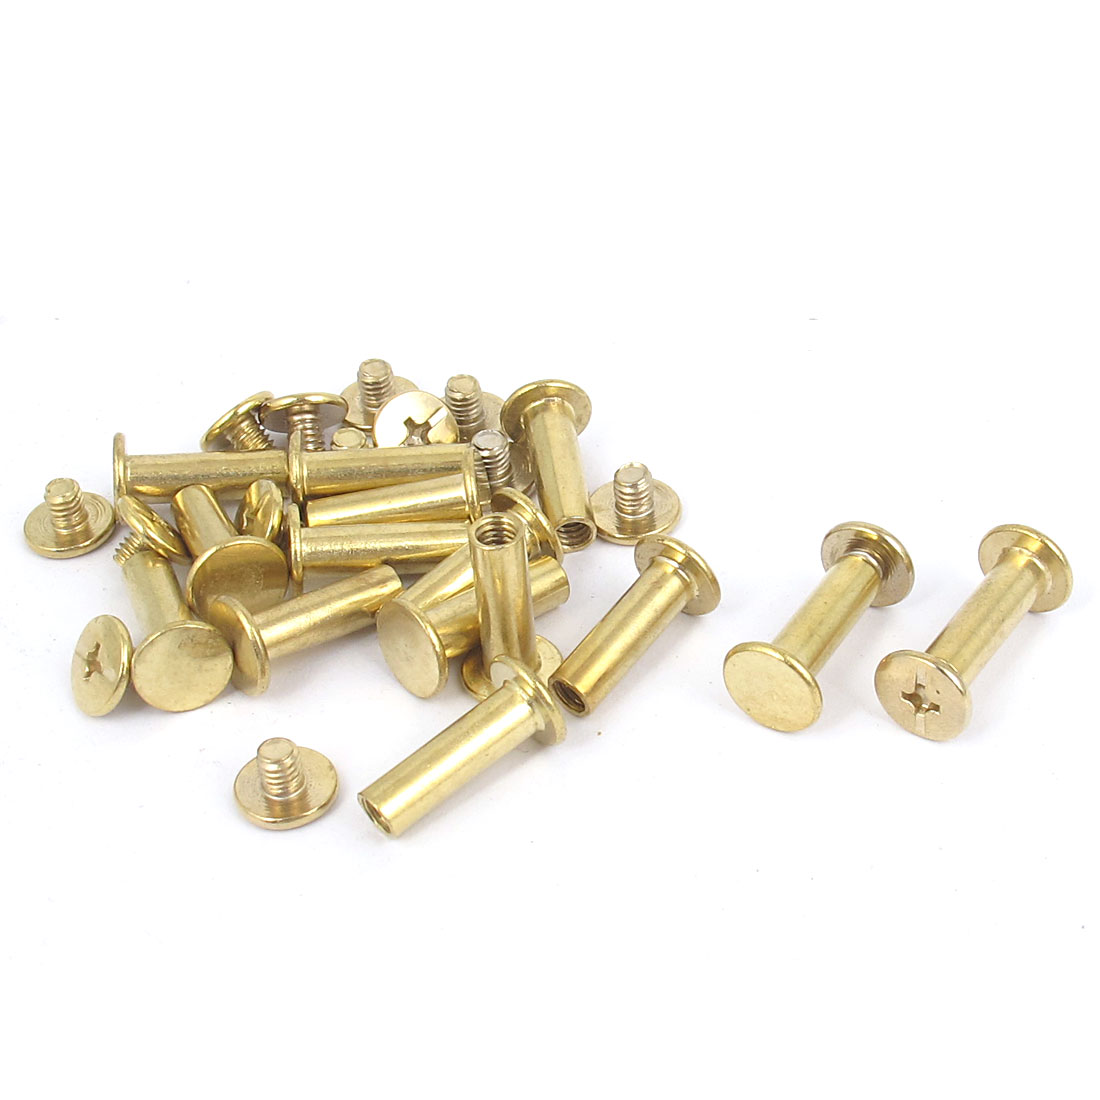 15pcs 5mmx15mm Brass Plated Binding Screw Post for Document Album Menu